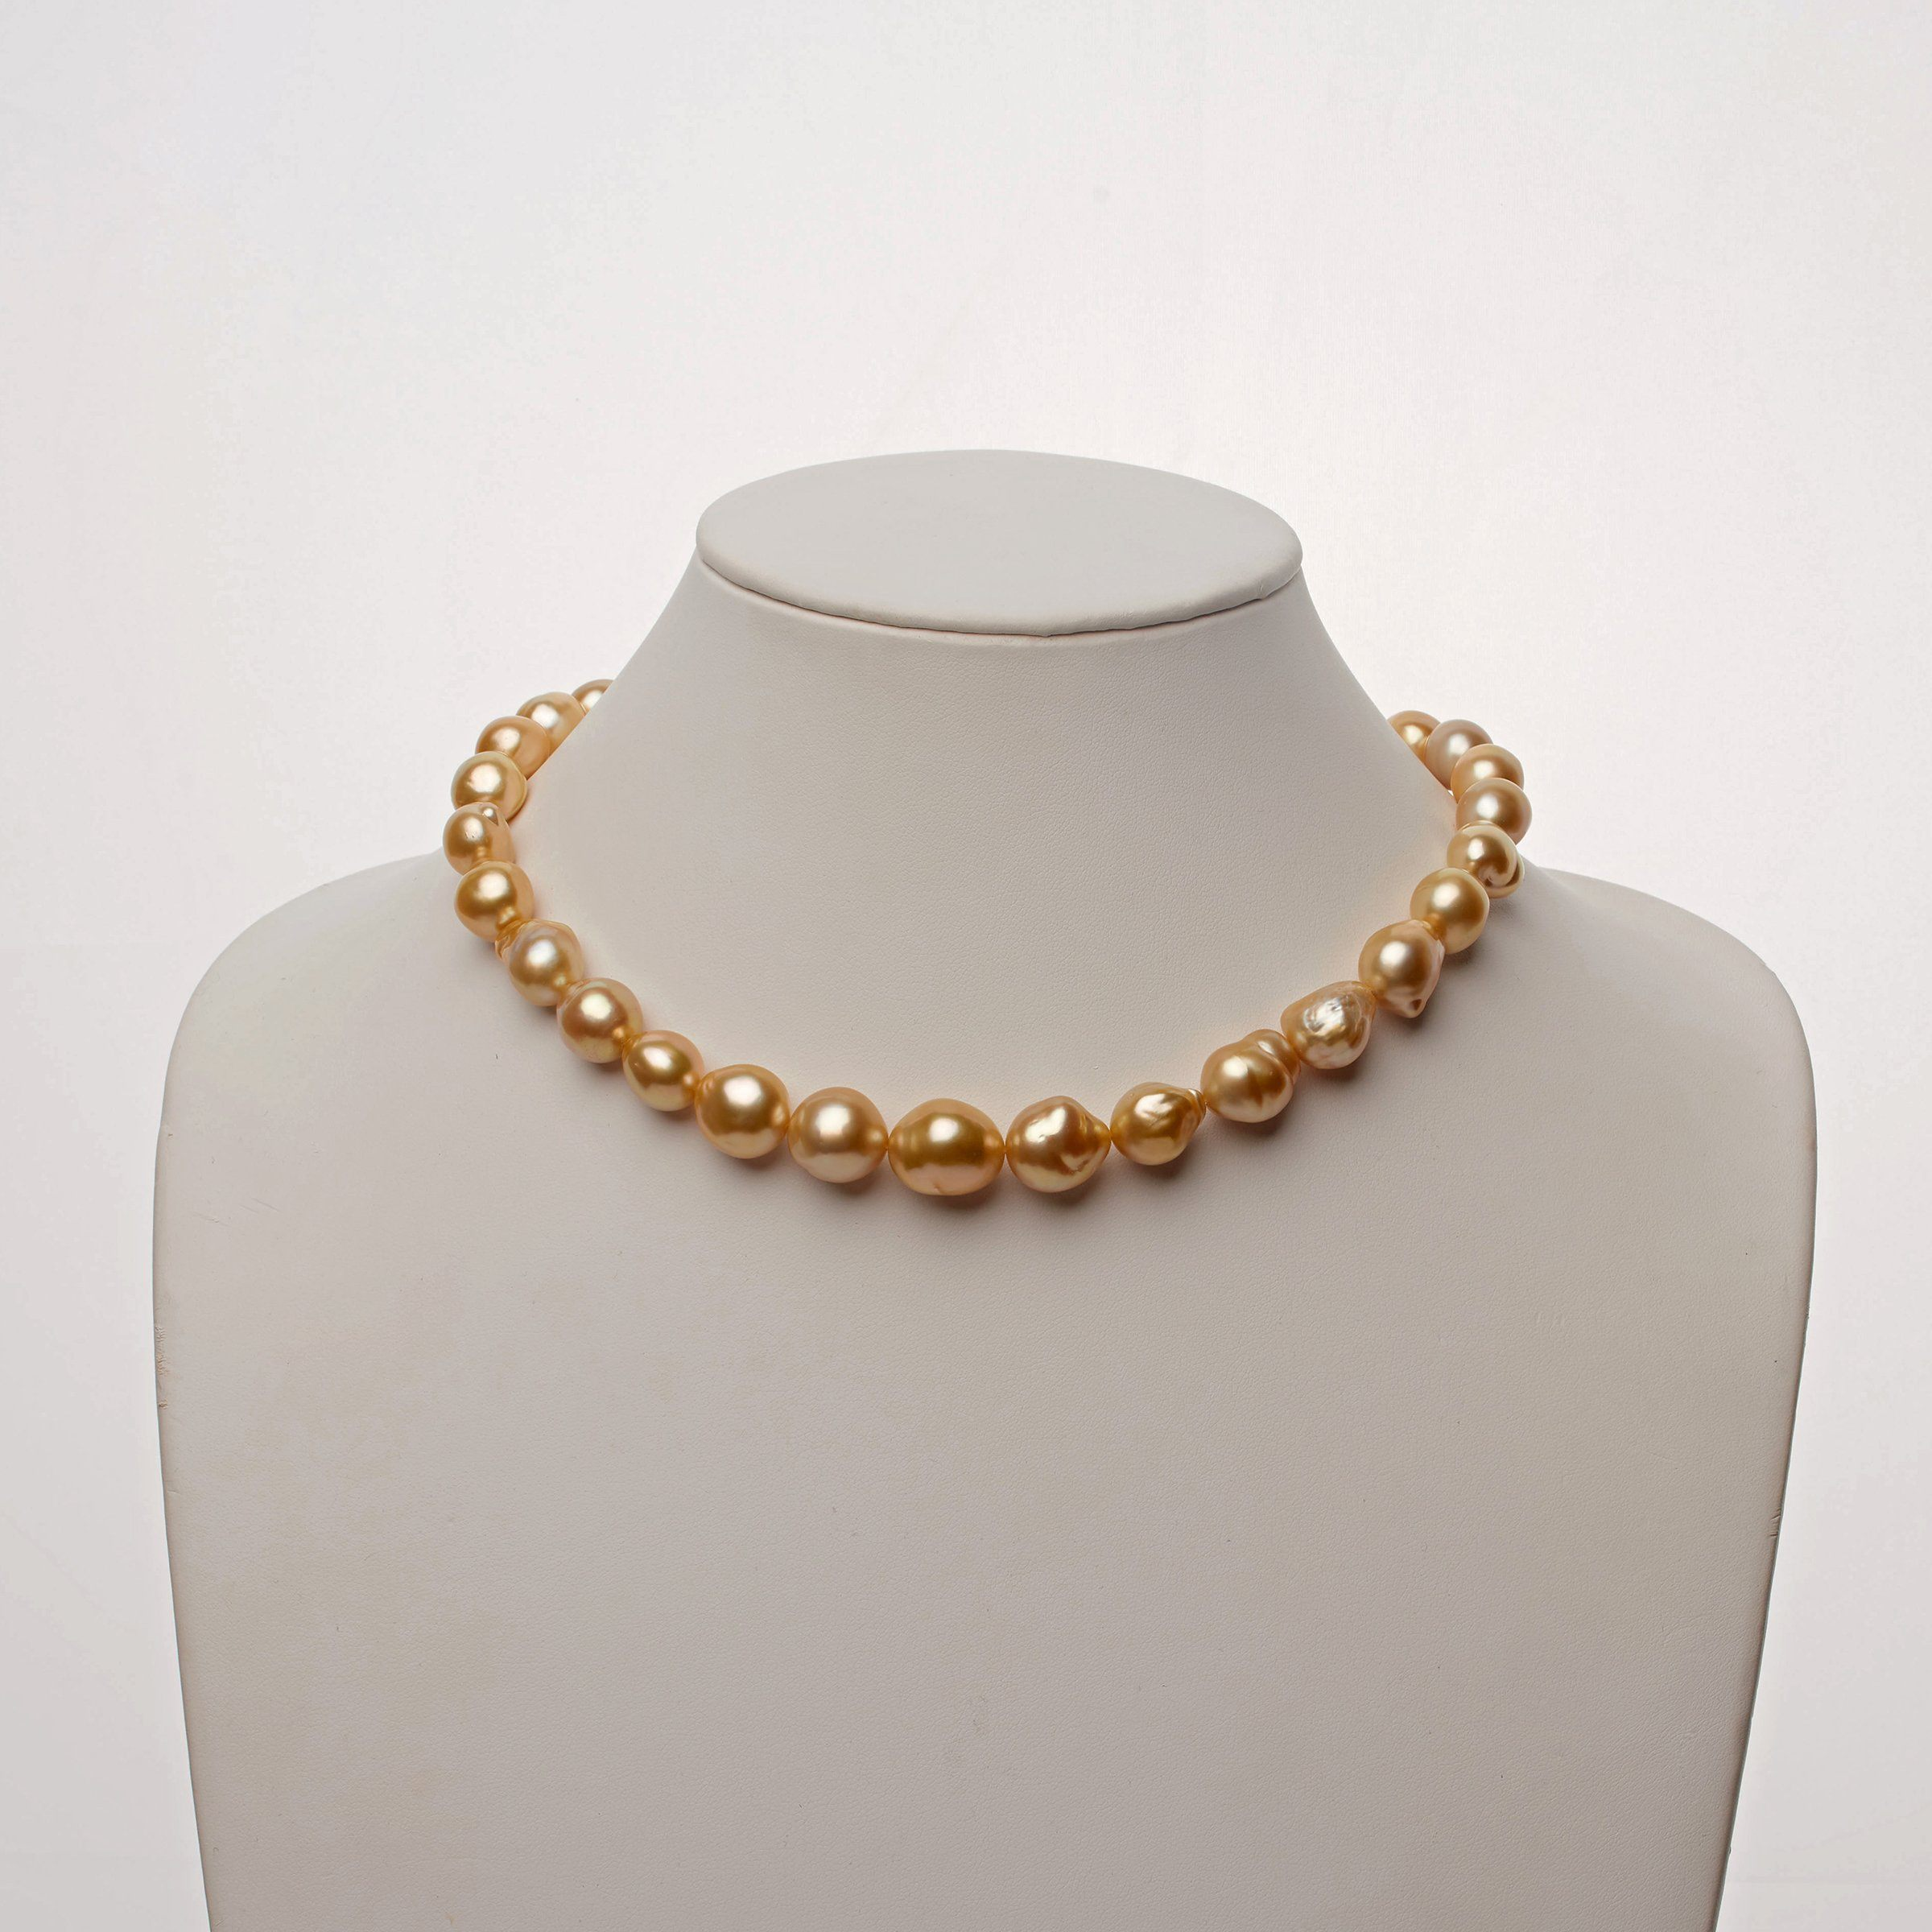 10.4-13.7 mm AA+/AAA Golden South Sea Baroque Pearl Necklace